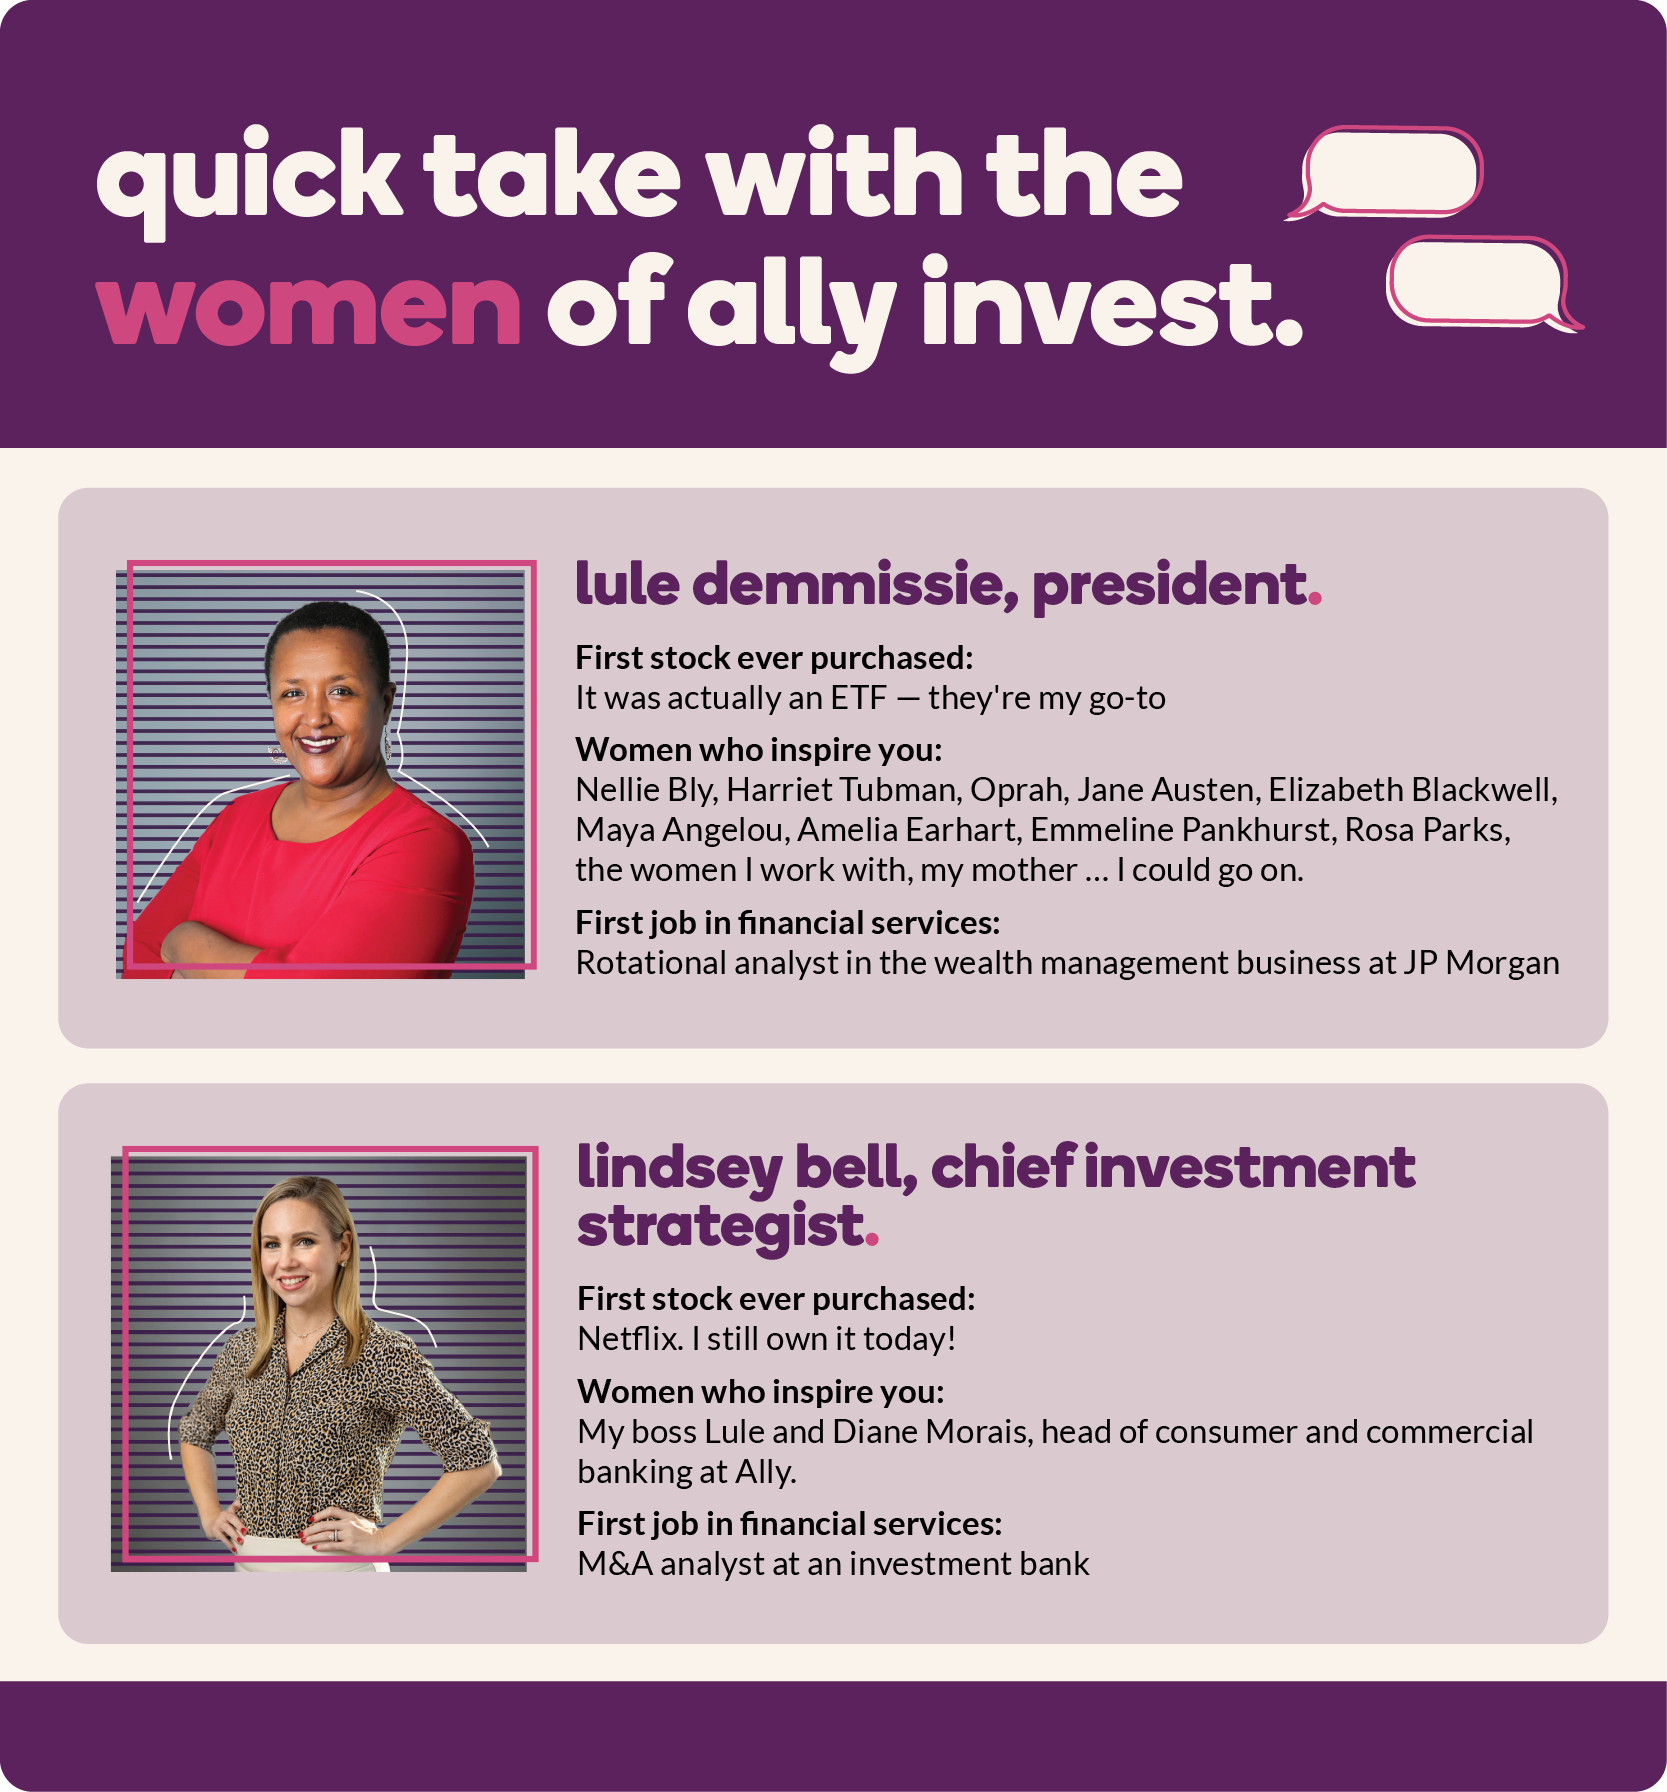 Quick take with the women of Ally Invest. First up, Lule Demmissie (president). First stock ever purchased? It was actually an ETF, my go-to; Women who inspire you? Nellie Bly, Harriet Tubman, Oprah, Jane Austen, Elizabeth Blackwell, Maya Angelou, Amelia Earhart, Emmeline Pankhurst, Rosa Parks, the women I work with, my mother ... I could go on; First job in financial services? Rotational analyst in the wealth management business at JP Morgan. Next, Lindsey Bell (chief investment strategist). First stock ever purchased? Netflix. I still own it today!; Women who inspire you? My boss Lule and Diane Morais, head of consumer and commercial banking at Ally; First job in financial services? M&A analyst at an investment bank.